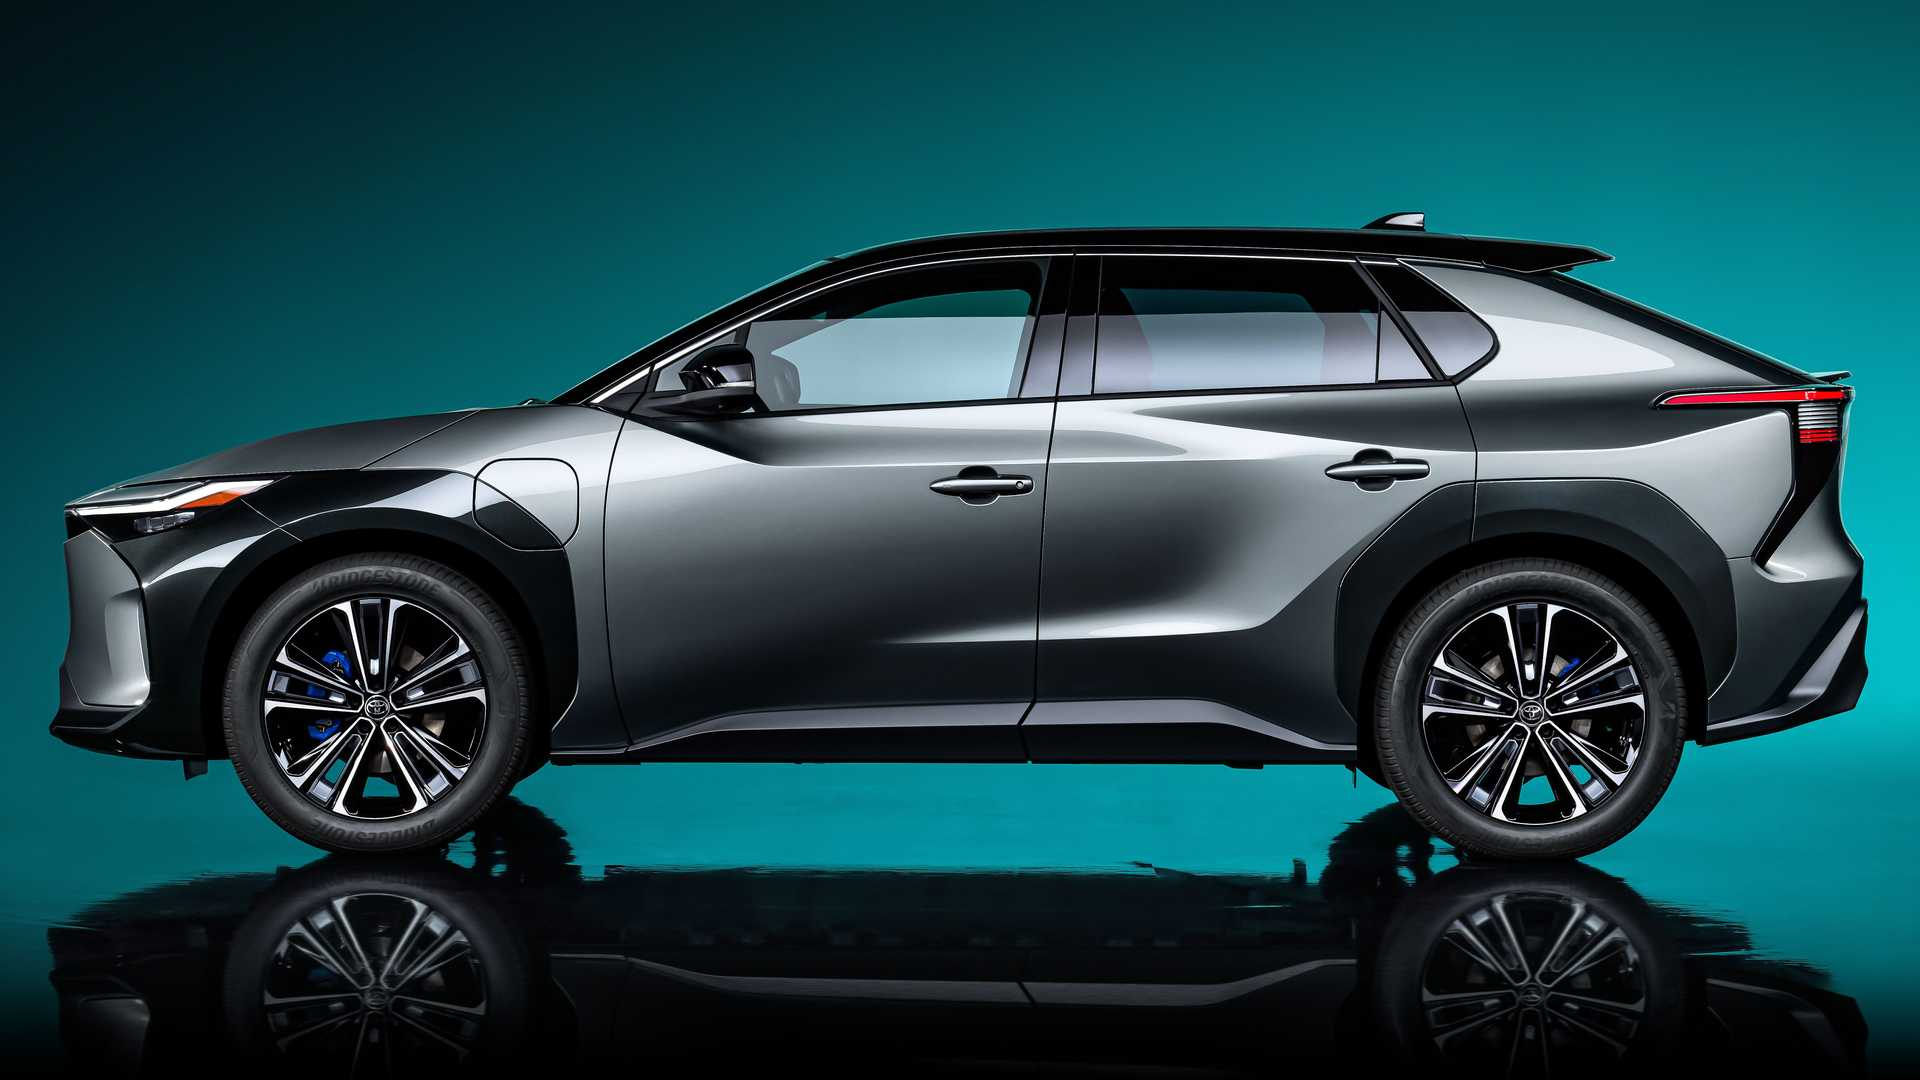 Toyota Reveals Electric SUV bZ4X Concept